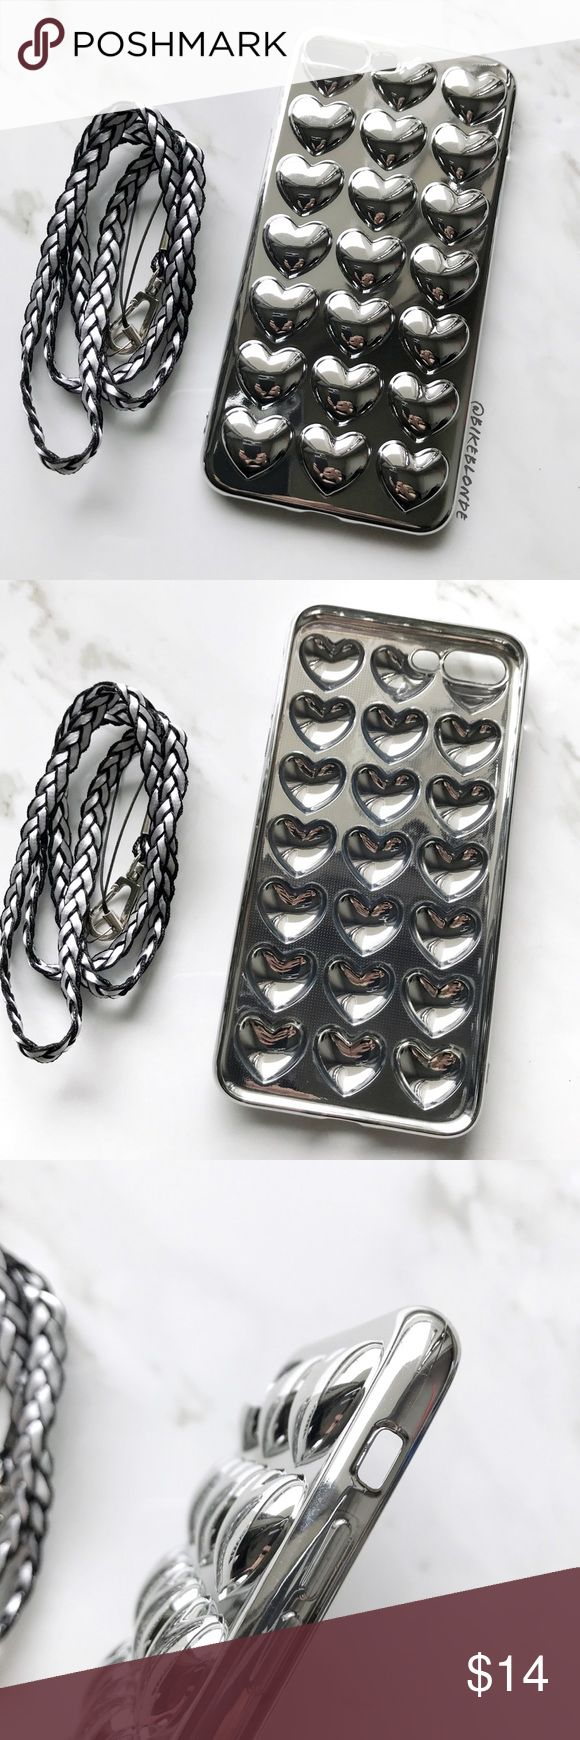 NEW iPhone 7/8/7+/8+ Silver 3D Hearts Soft Case ▪️Metallic Silver 3D Heart Pattern  ▪️New In Package , Choose 7/8 or 7 Plus/8 Plus Below  ▪️Soft TPU, Easy To Remove, Comes With Strap          ▪️Same or Next Business Day Shipping Accessories Phone Cases